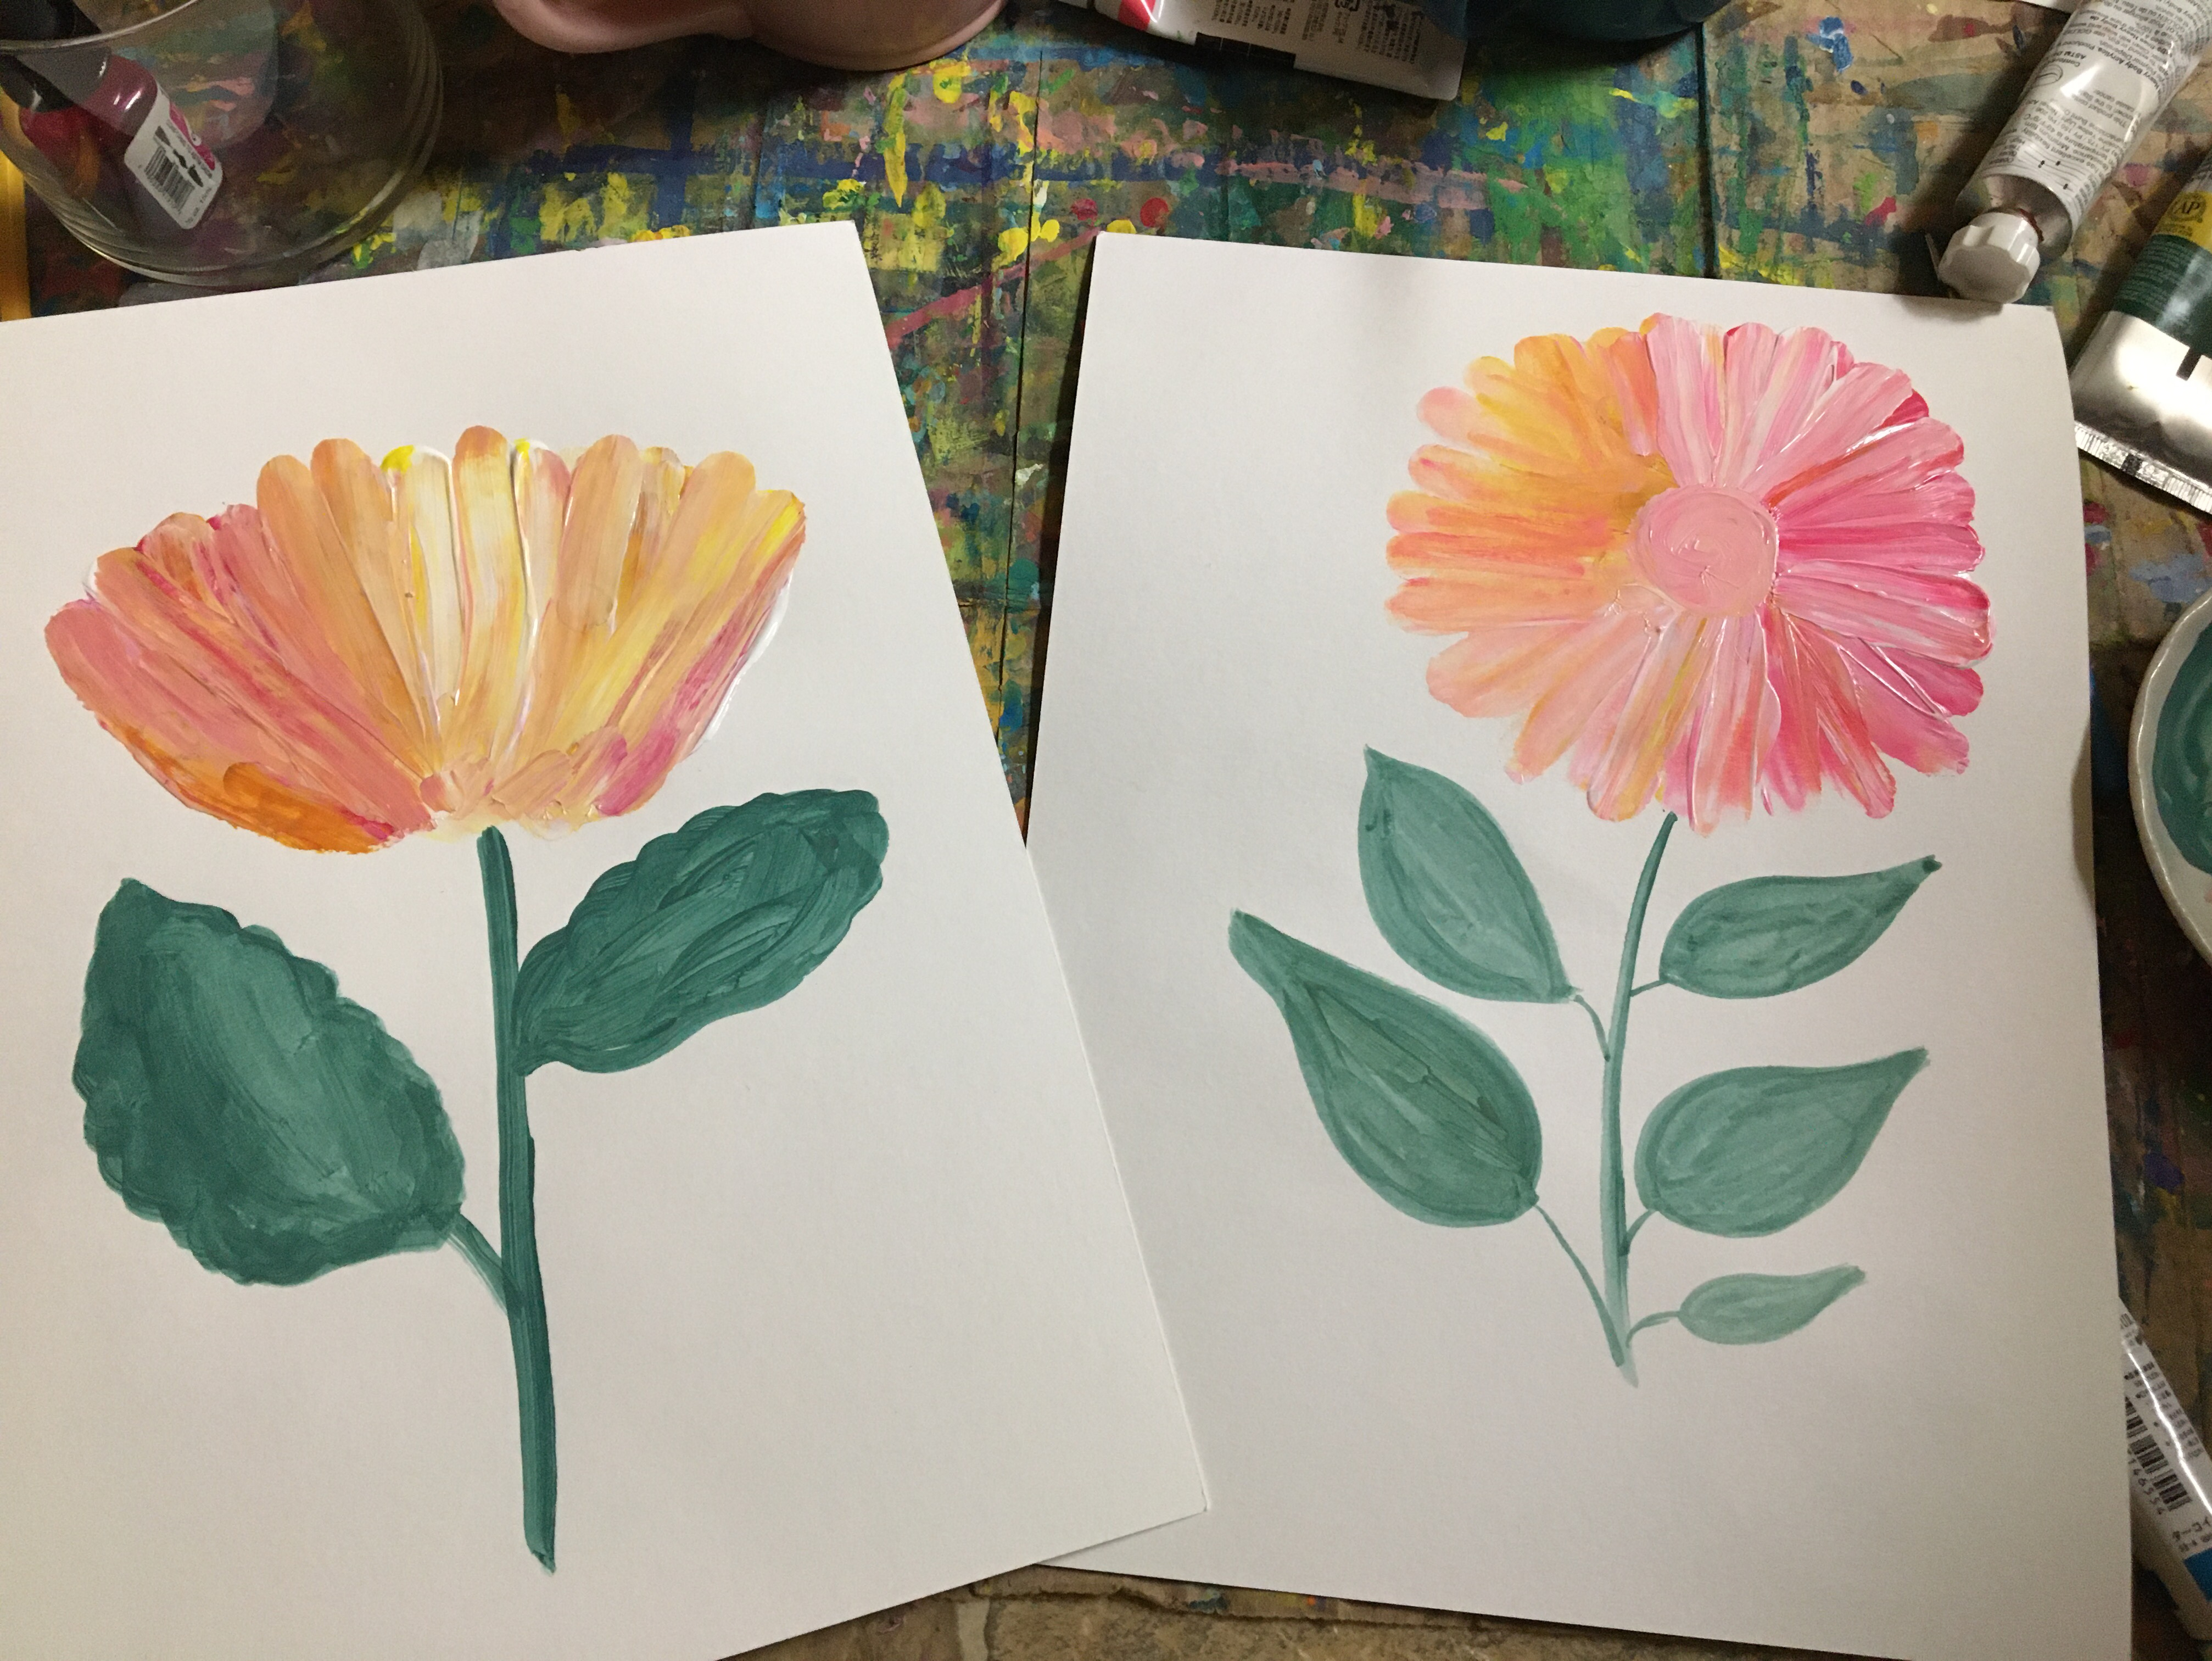 mix up pinks and oranges and paint a flower with your finger.